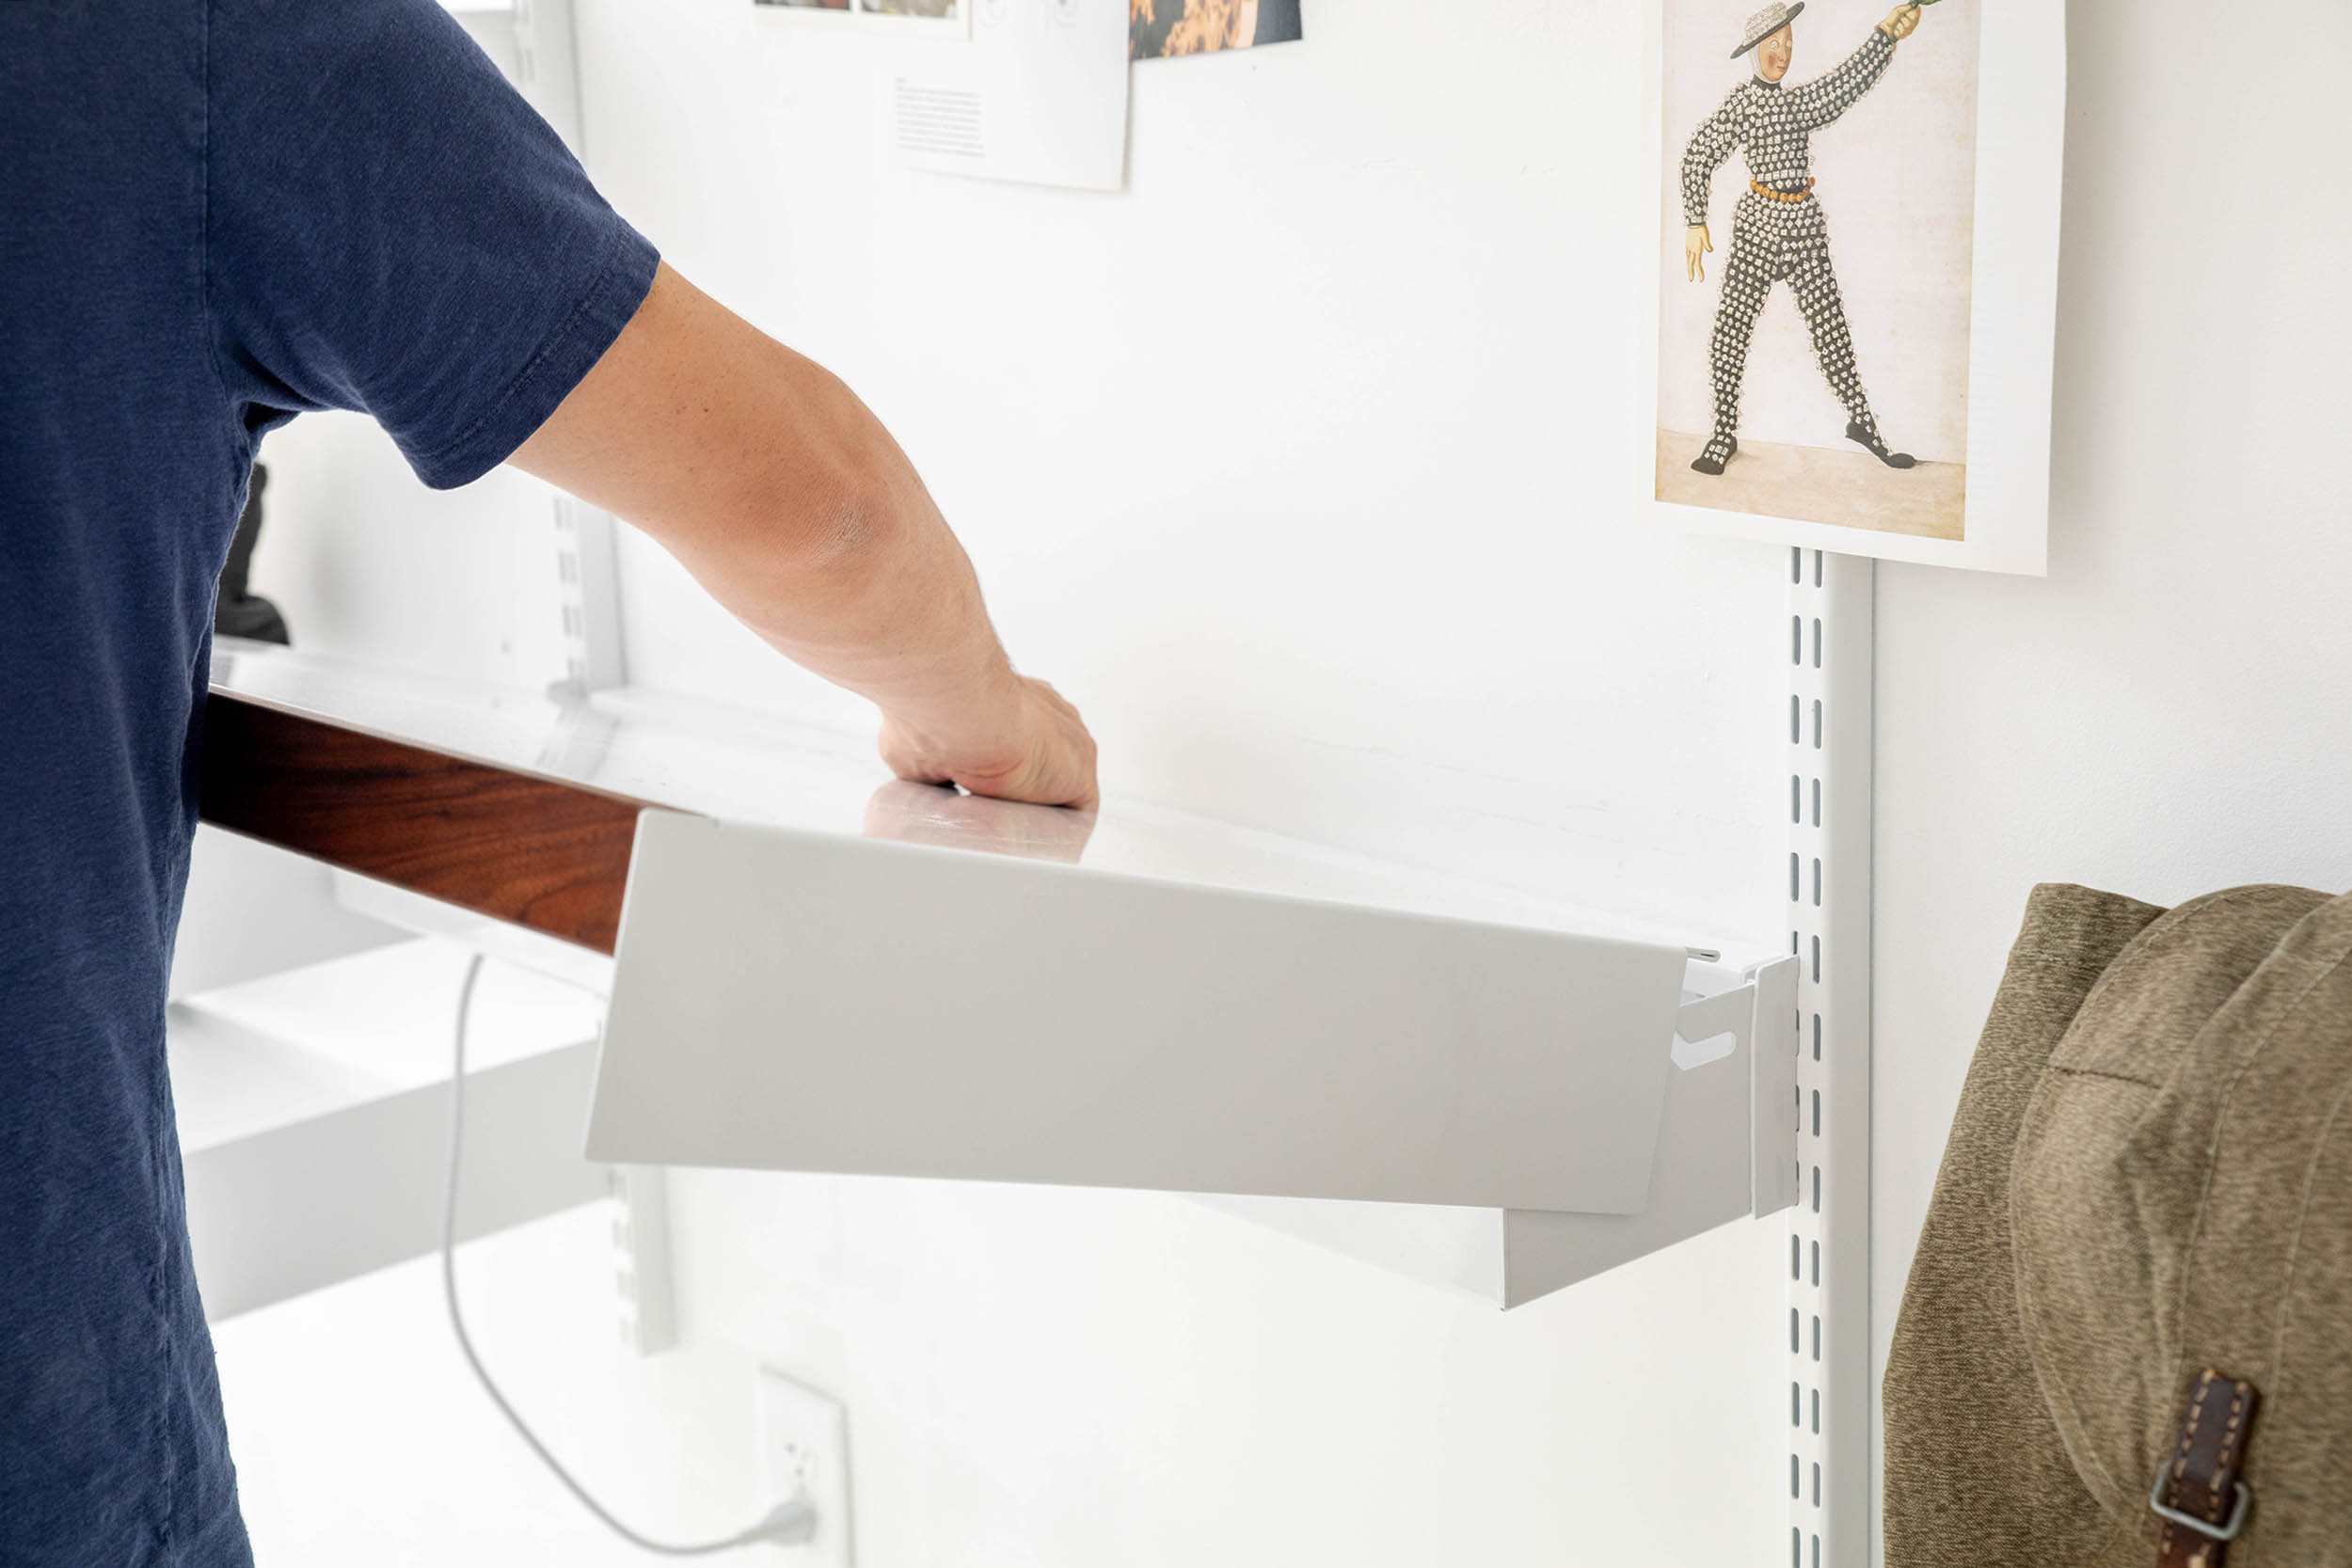 Adjustable Desk with Grcic stool one